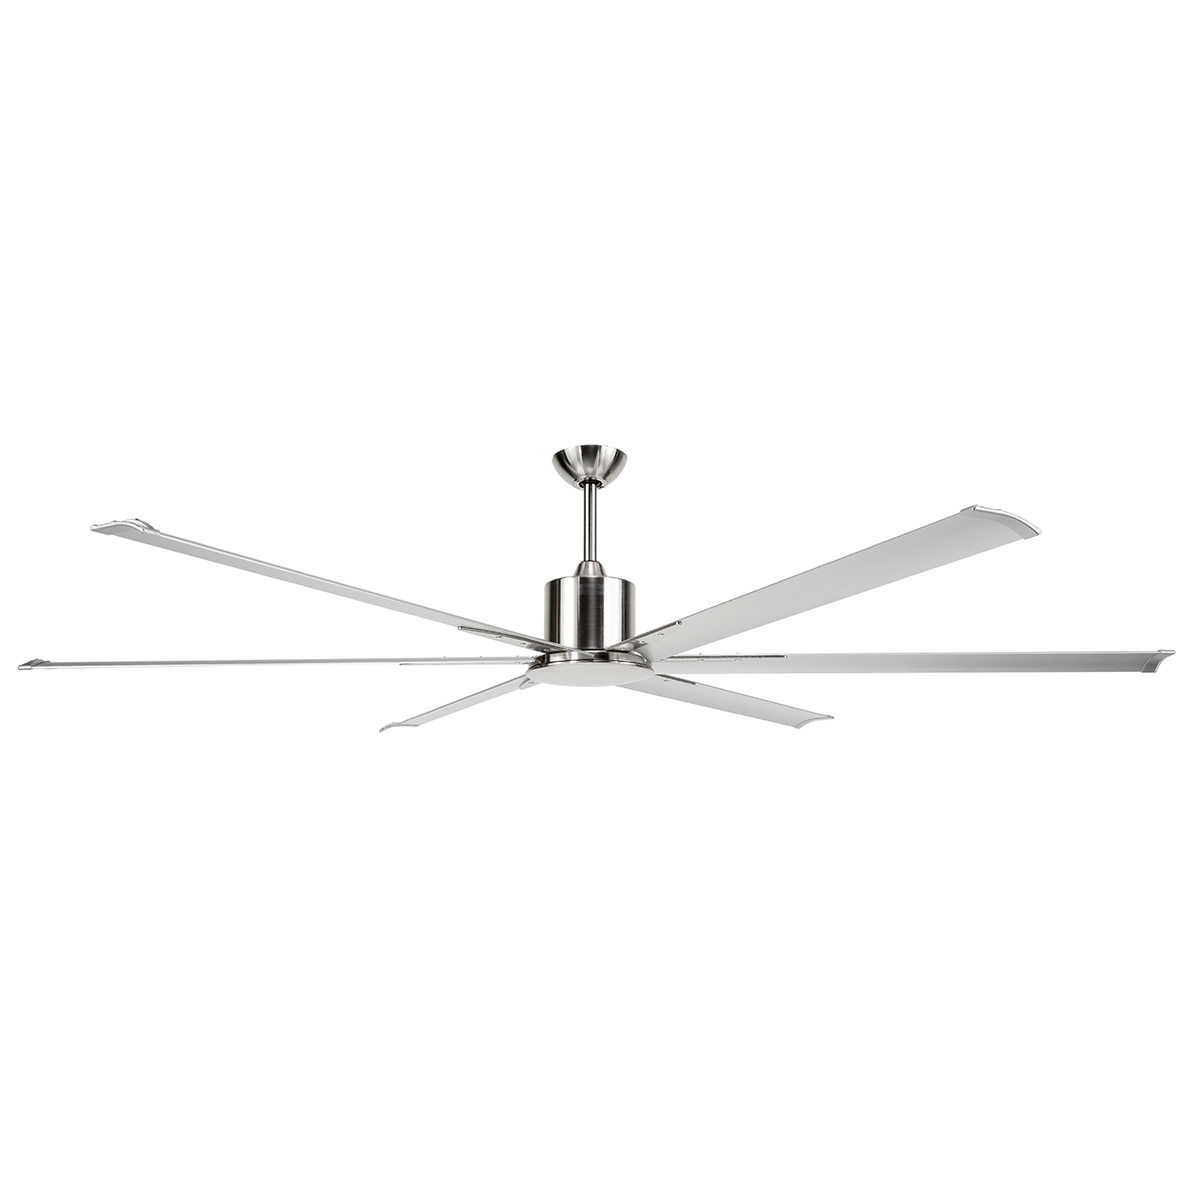 Extra high airflow ceiling fans high air movement performance 33 maelstrom silver main mozeypictures Gallery